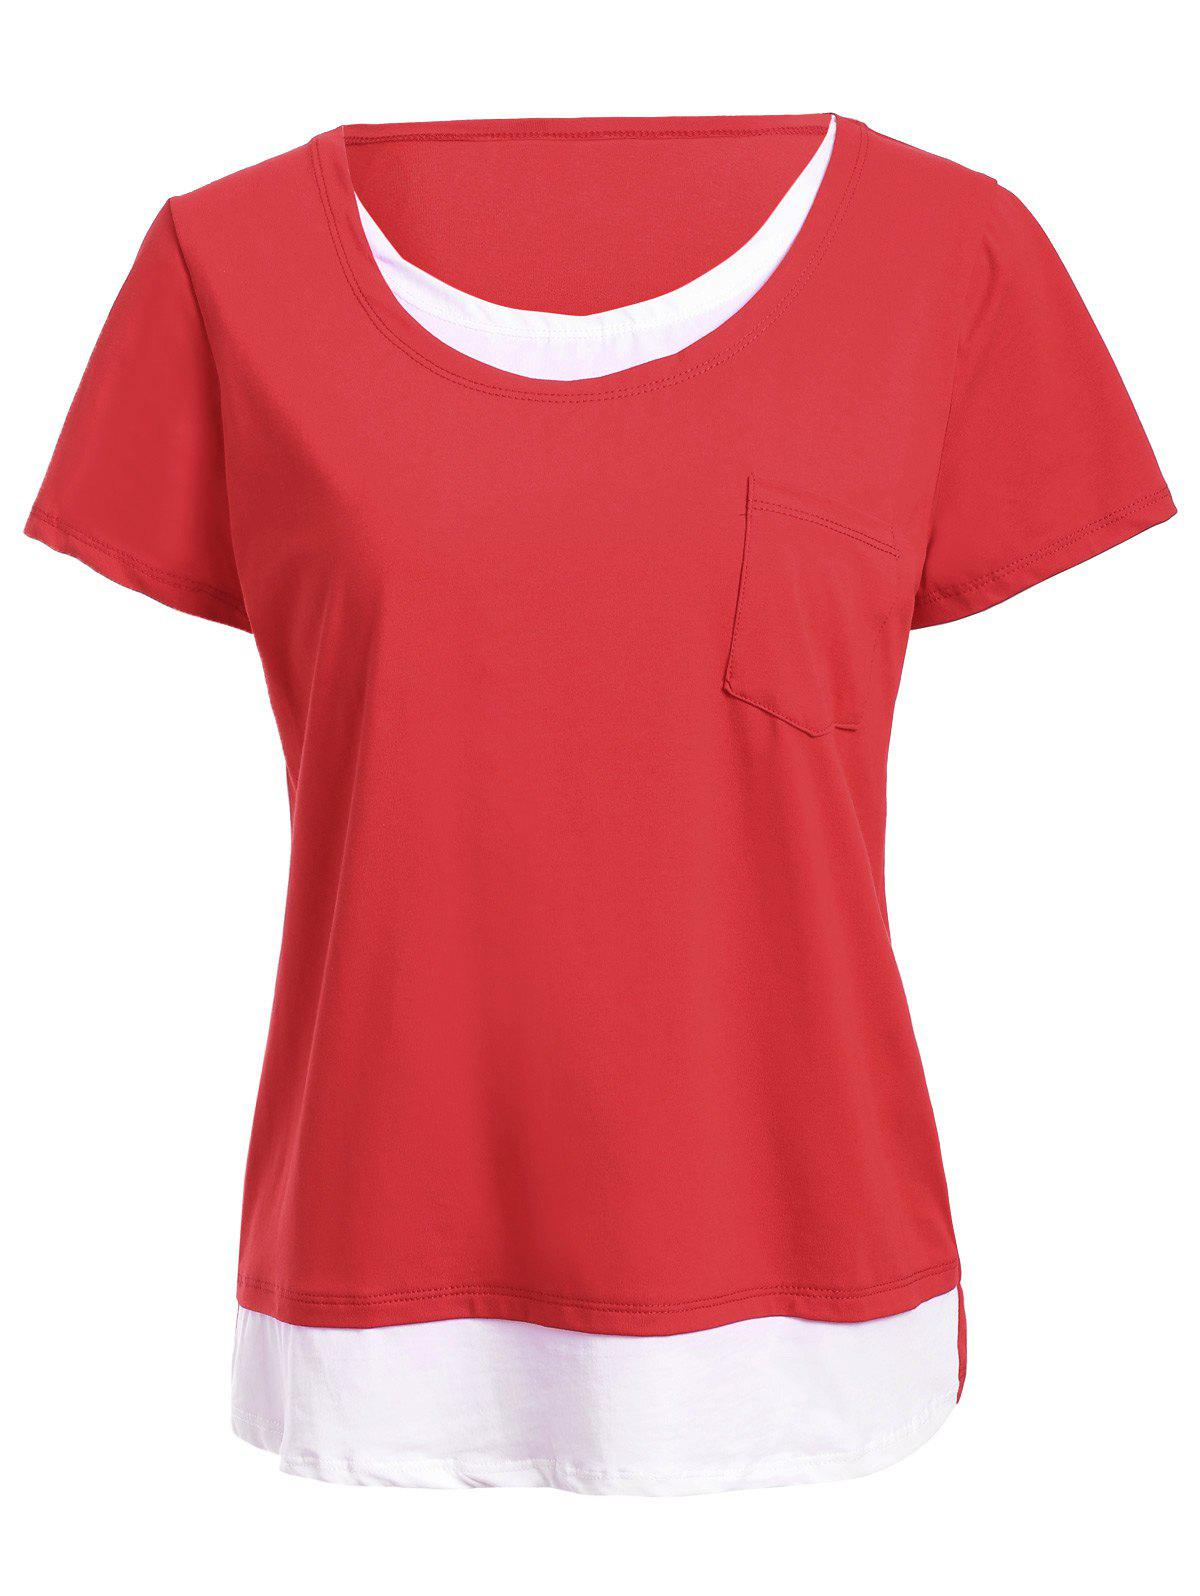 Brief Short Sleeve Patchwork Faux Twinset Tee For Women - RED XL